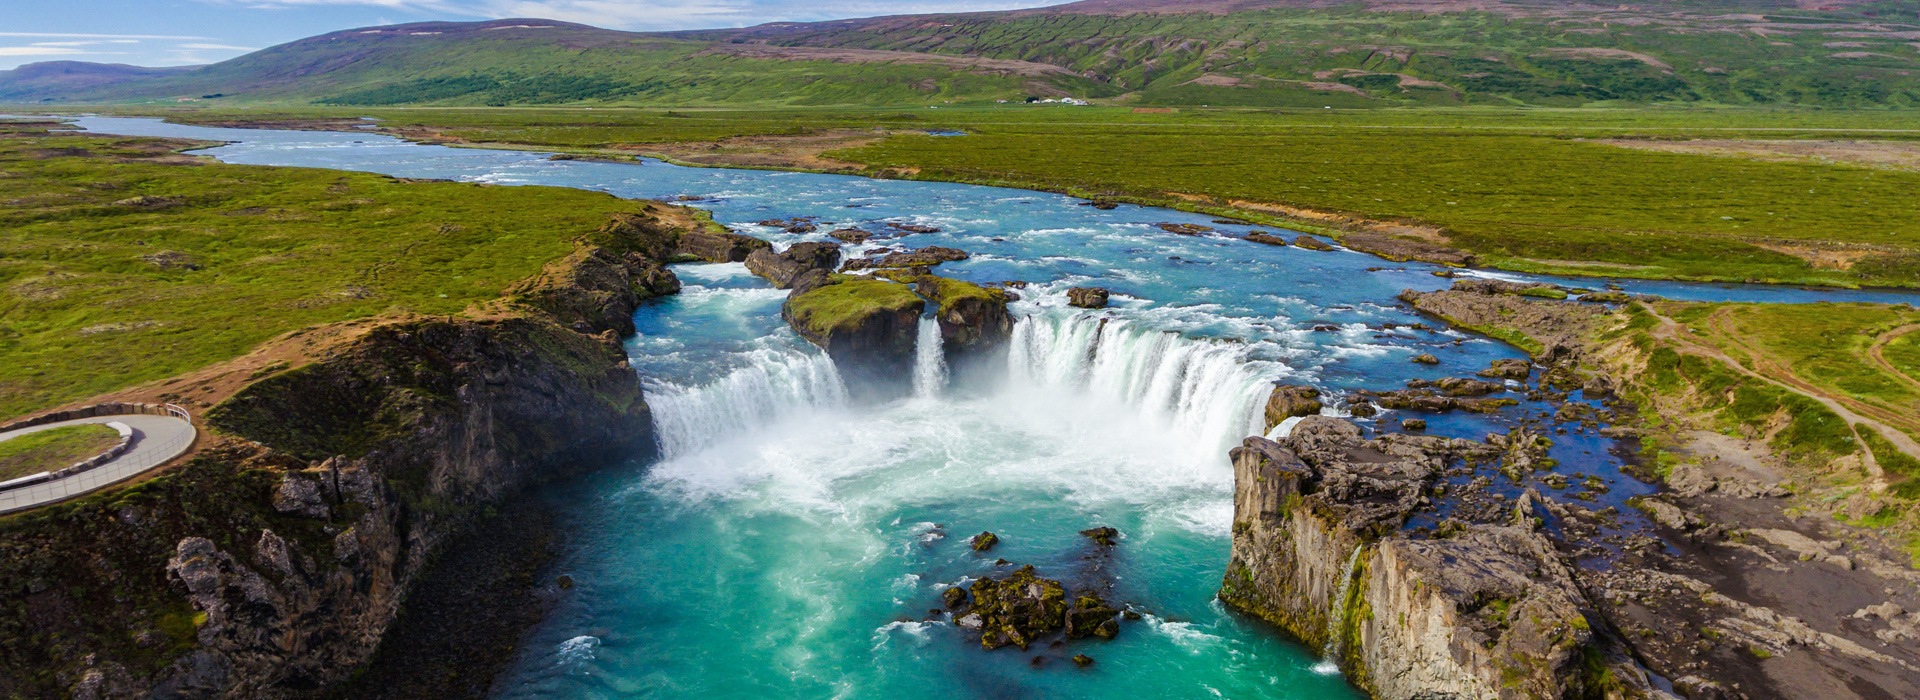 Aerial view of Godafoss waterfall, Iceland